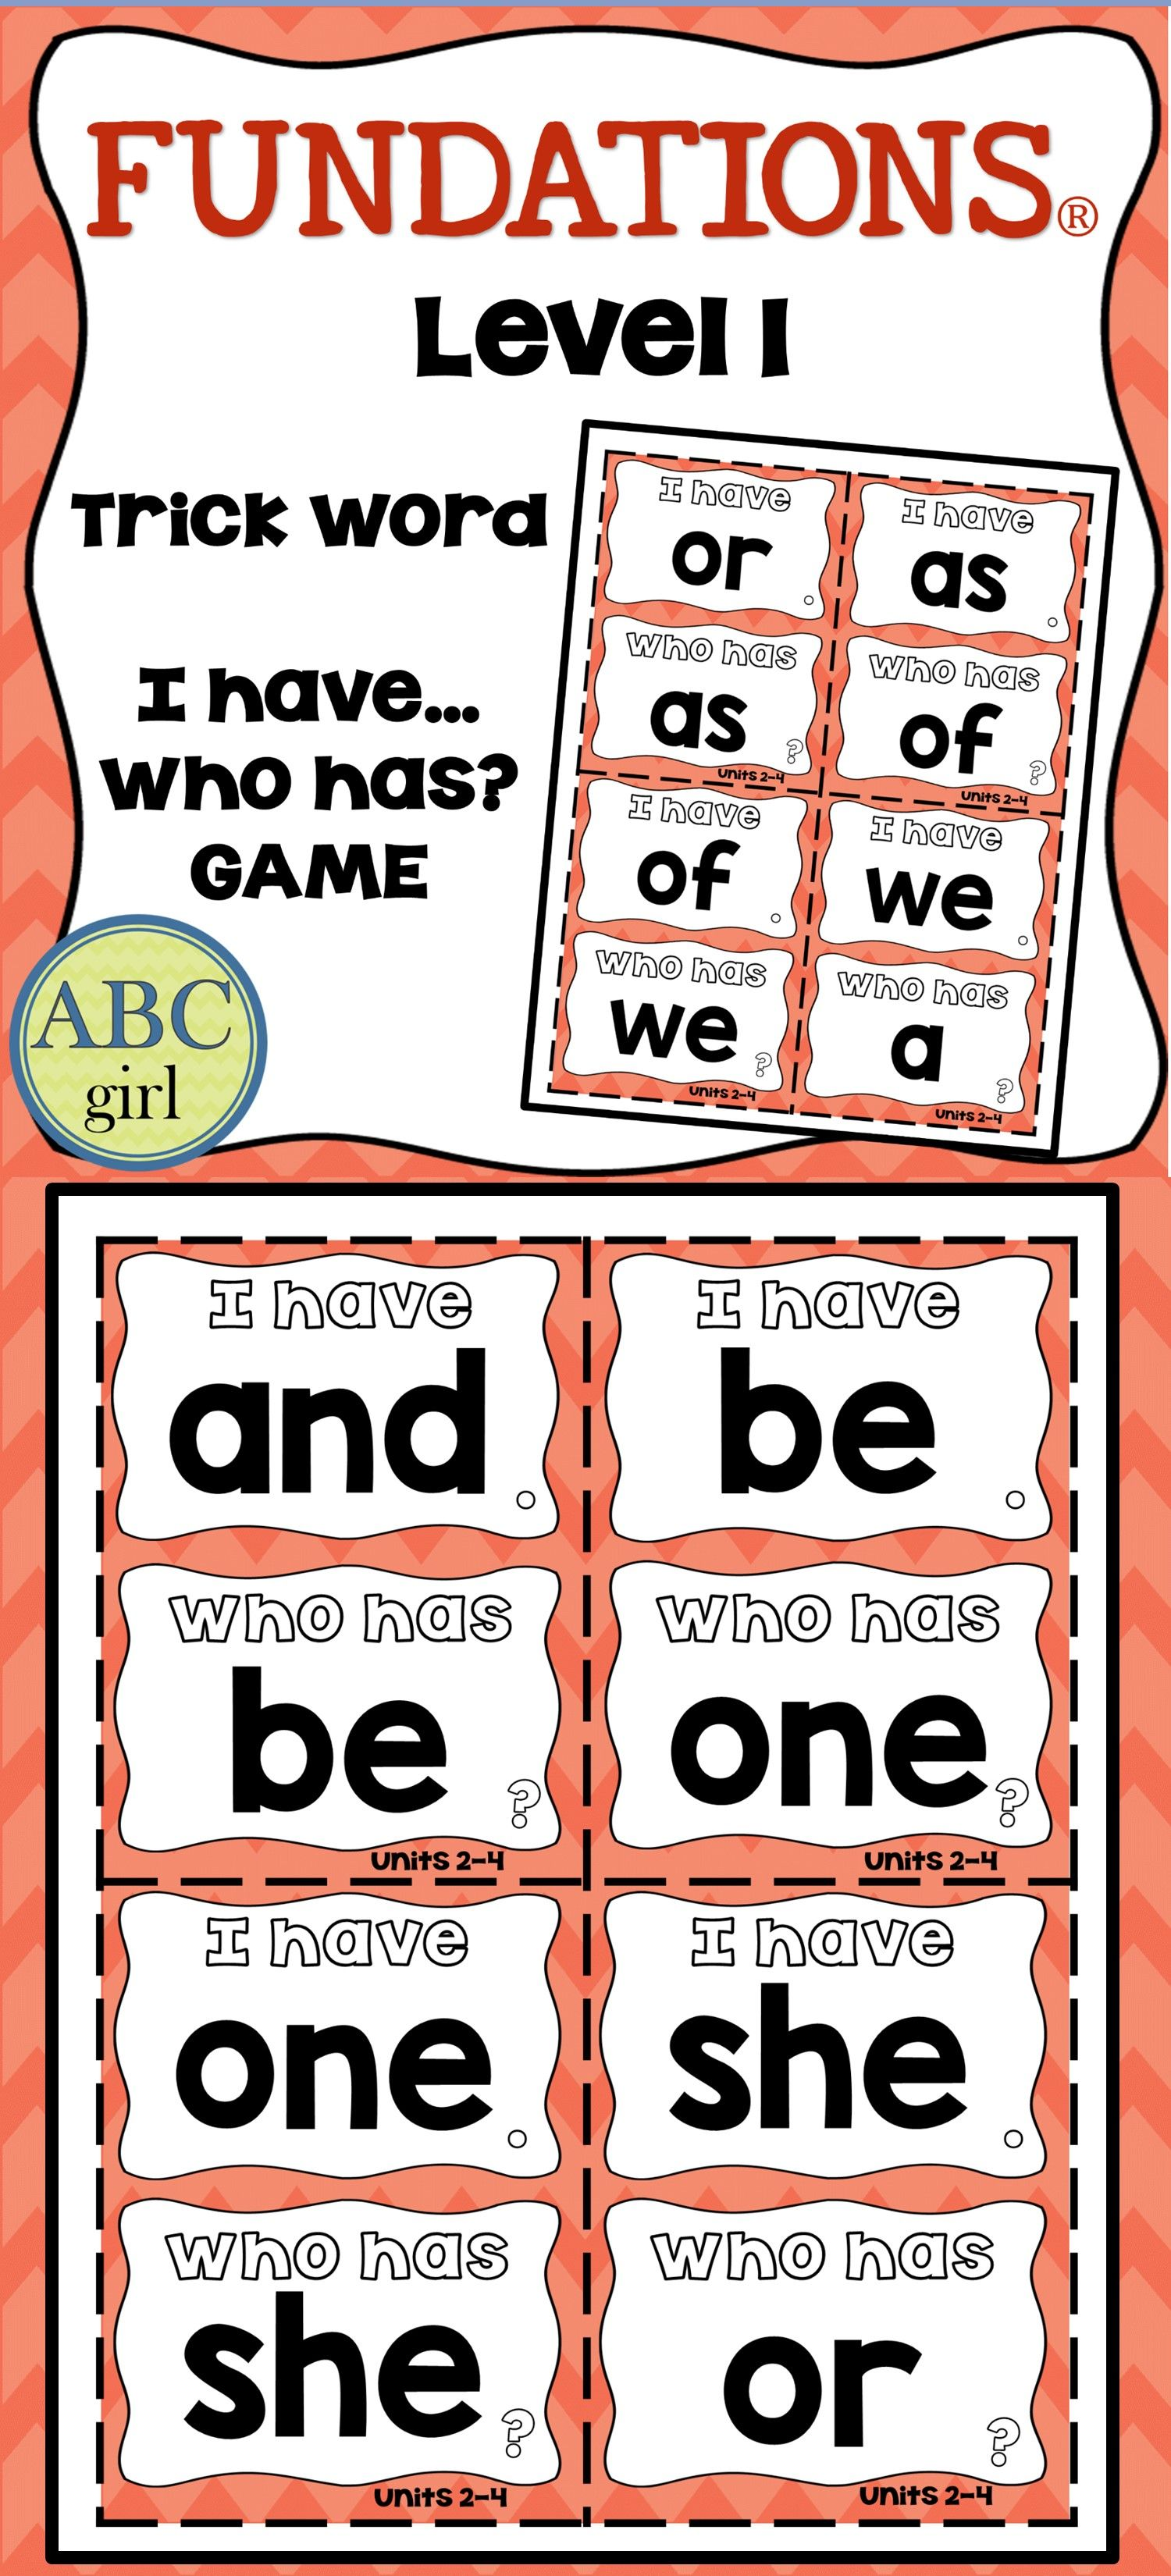 Fundations Trick Words Grade 1 Worksheets   Printable Worksheets and  Activities for Teachers [ 3300 x 1500 Pixel ]